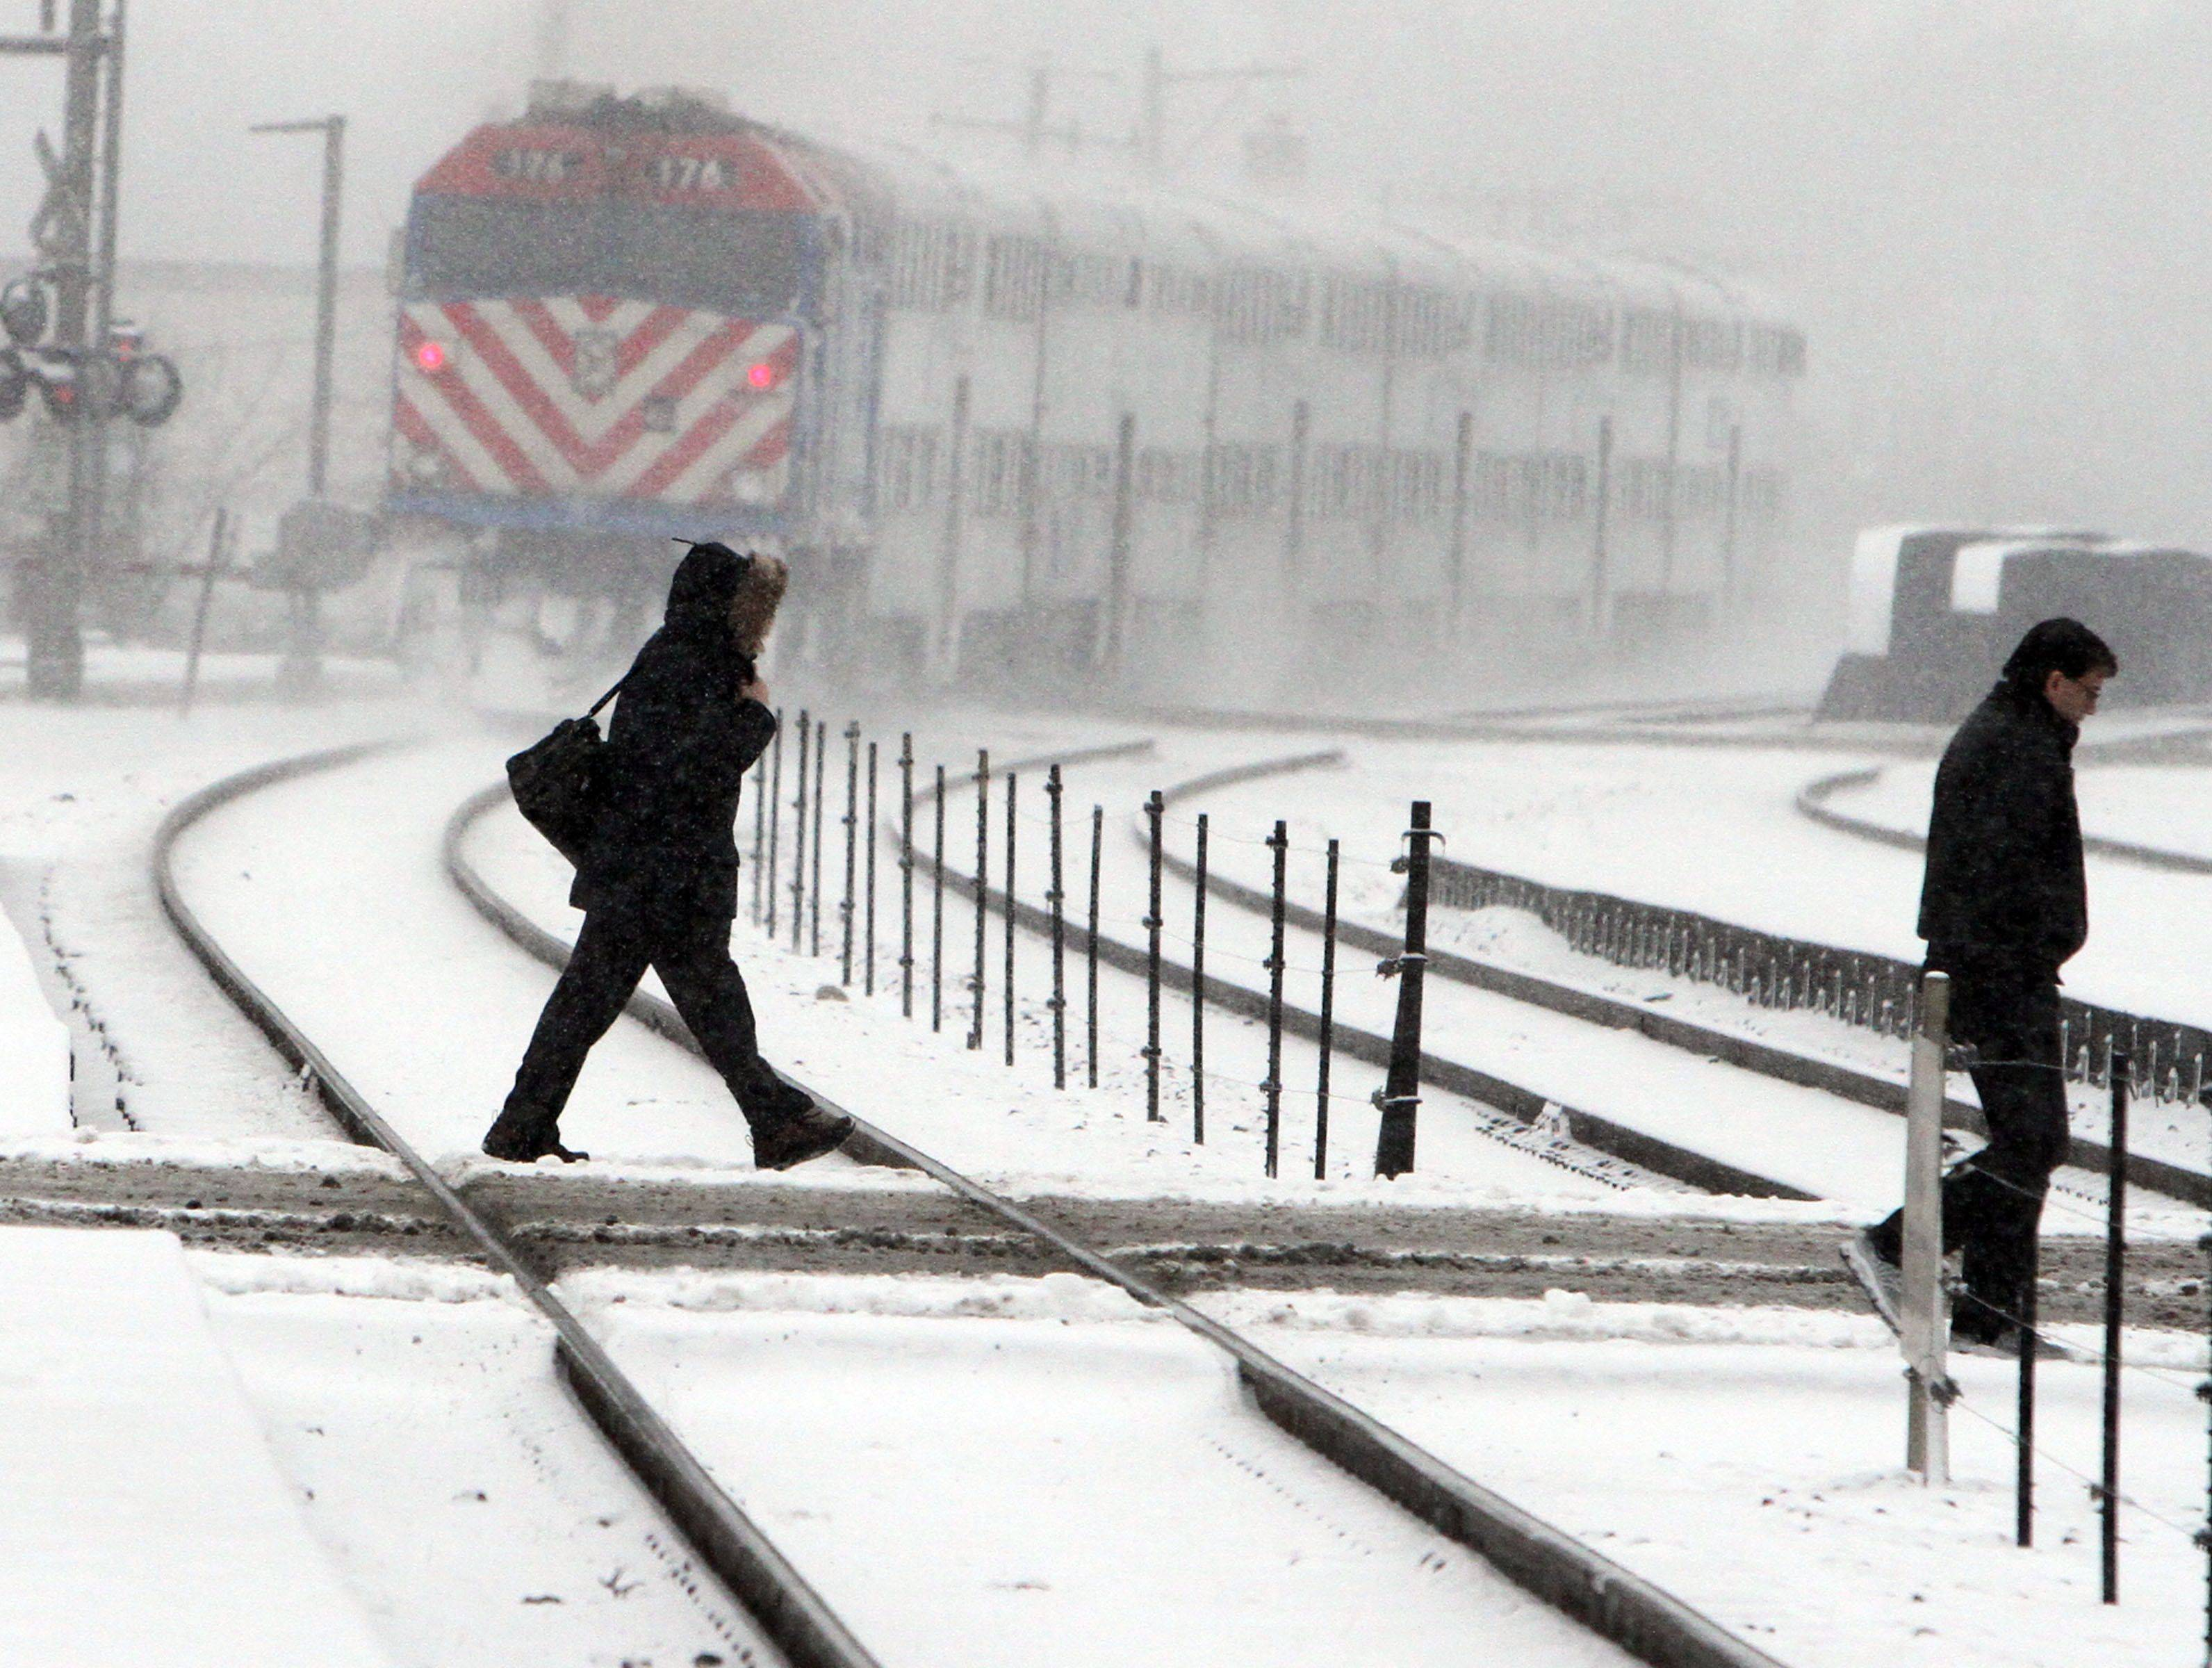 A morning commuter crosses the train tracks at Lee and Miner Streets in Des Plaines as a train pulls in on Tuesday, January 11.